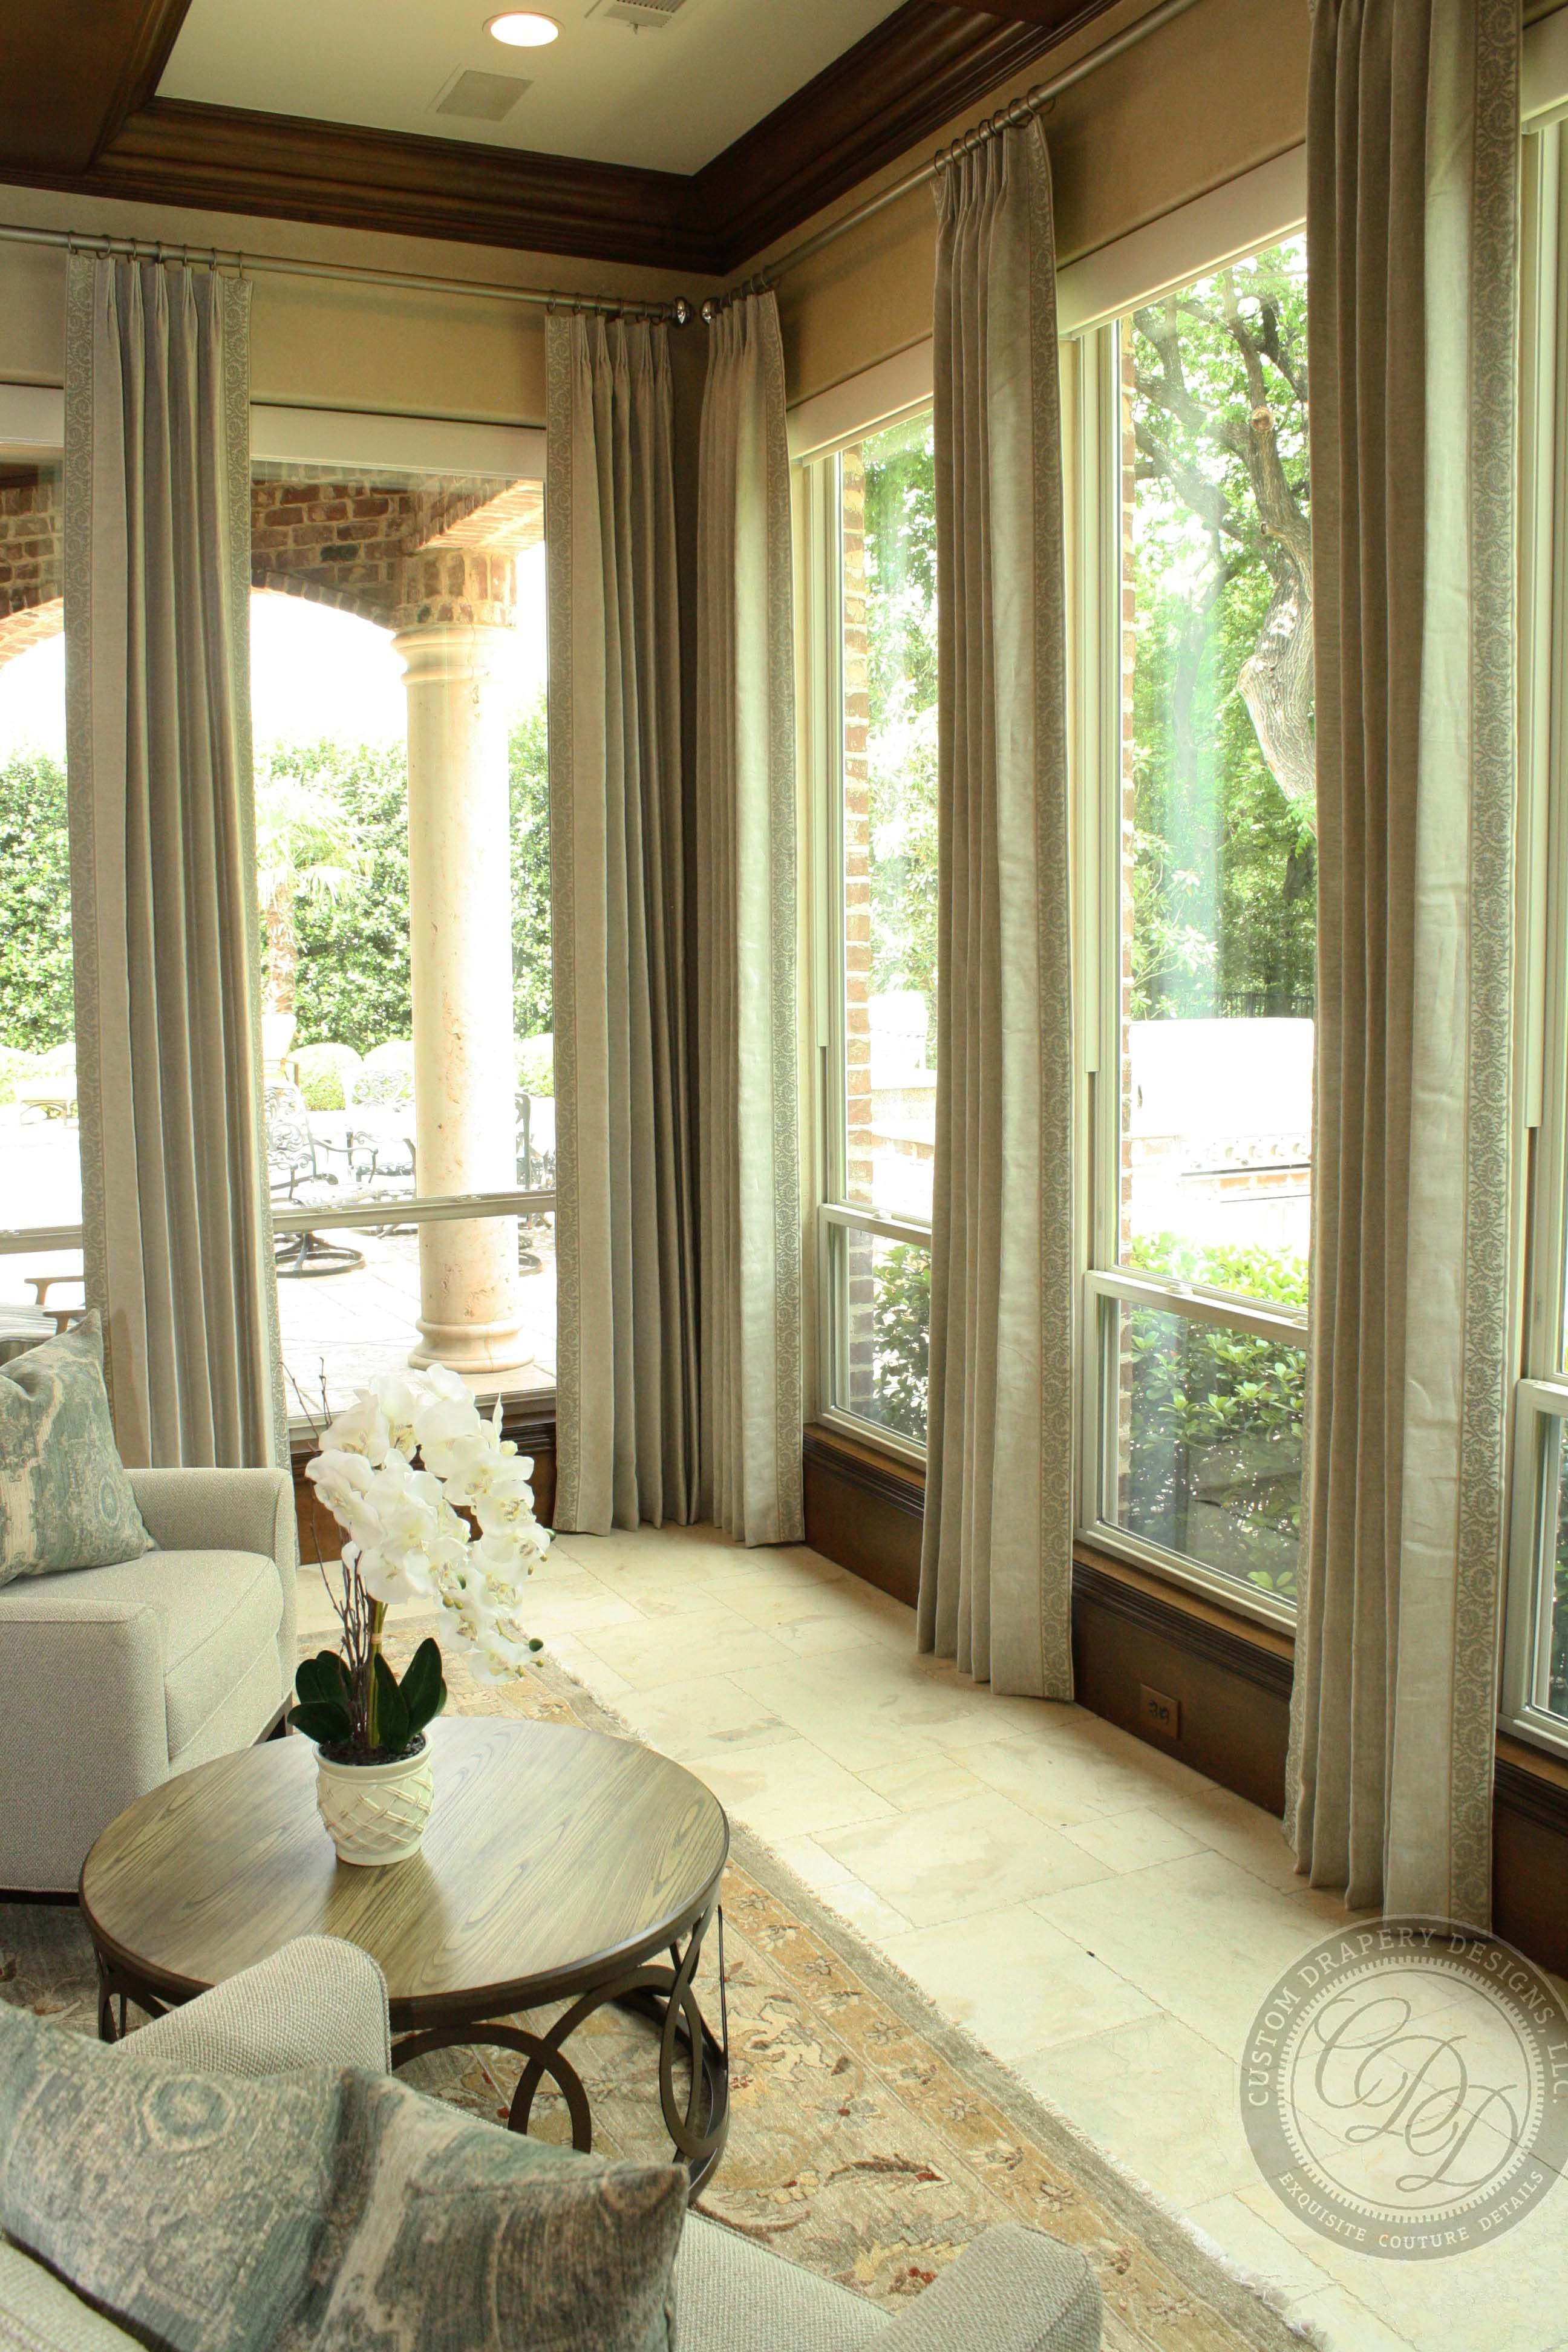 Custom drapery designs llc bringing the outside in with neural